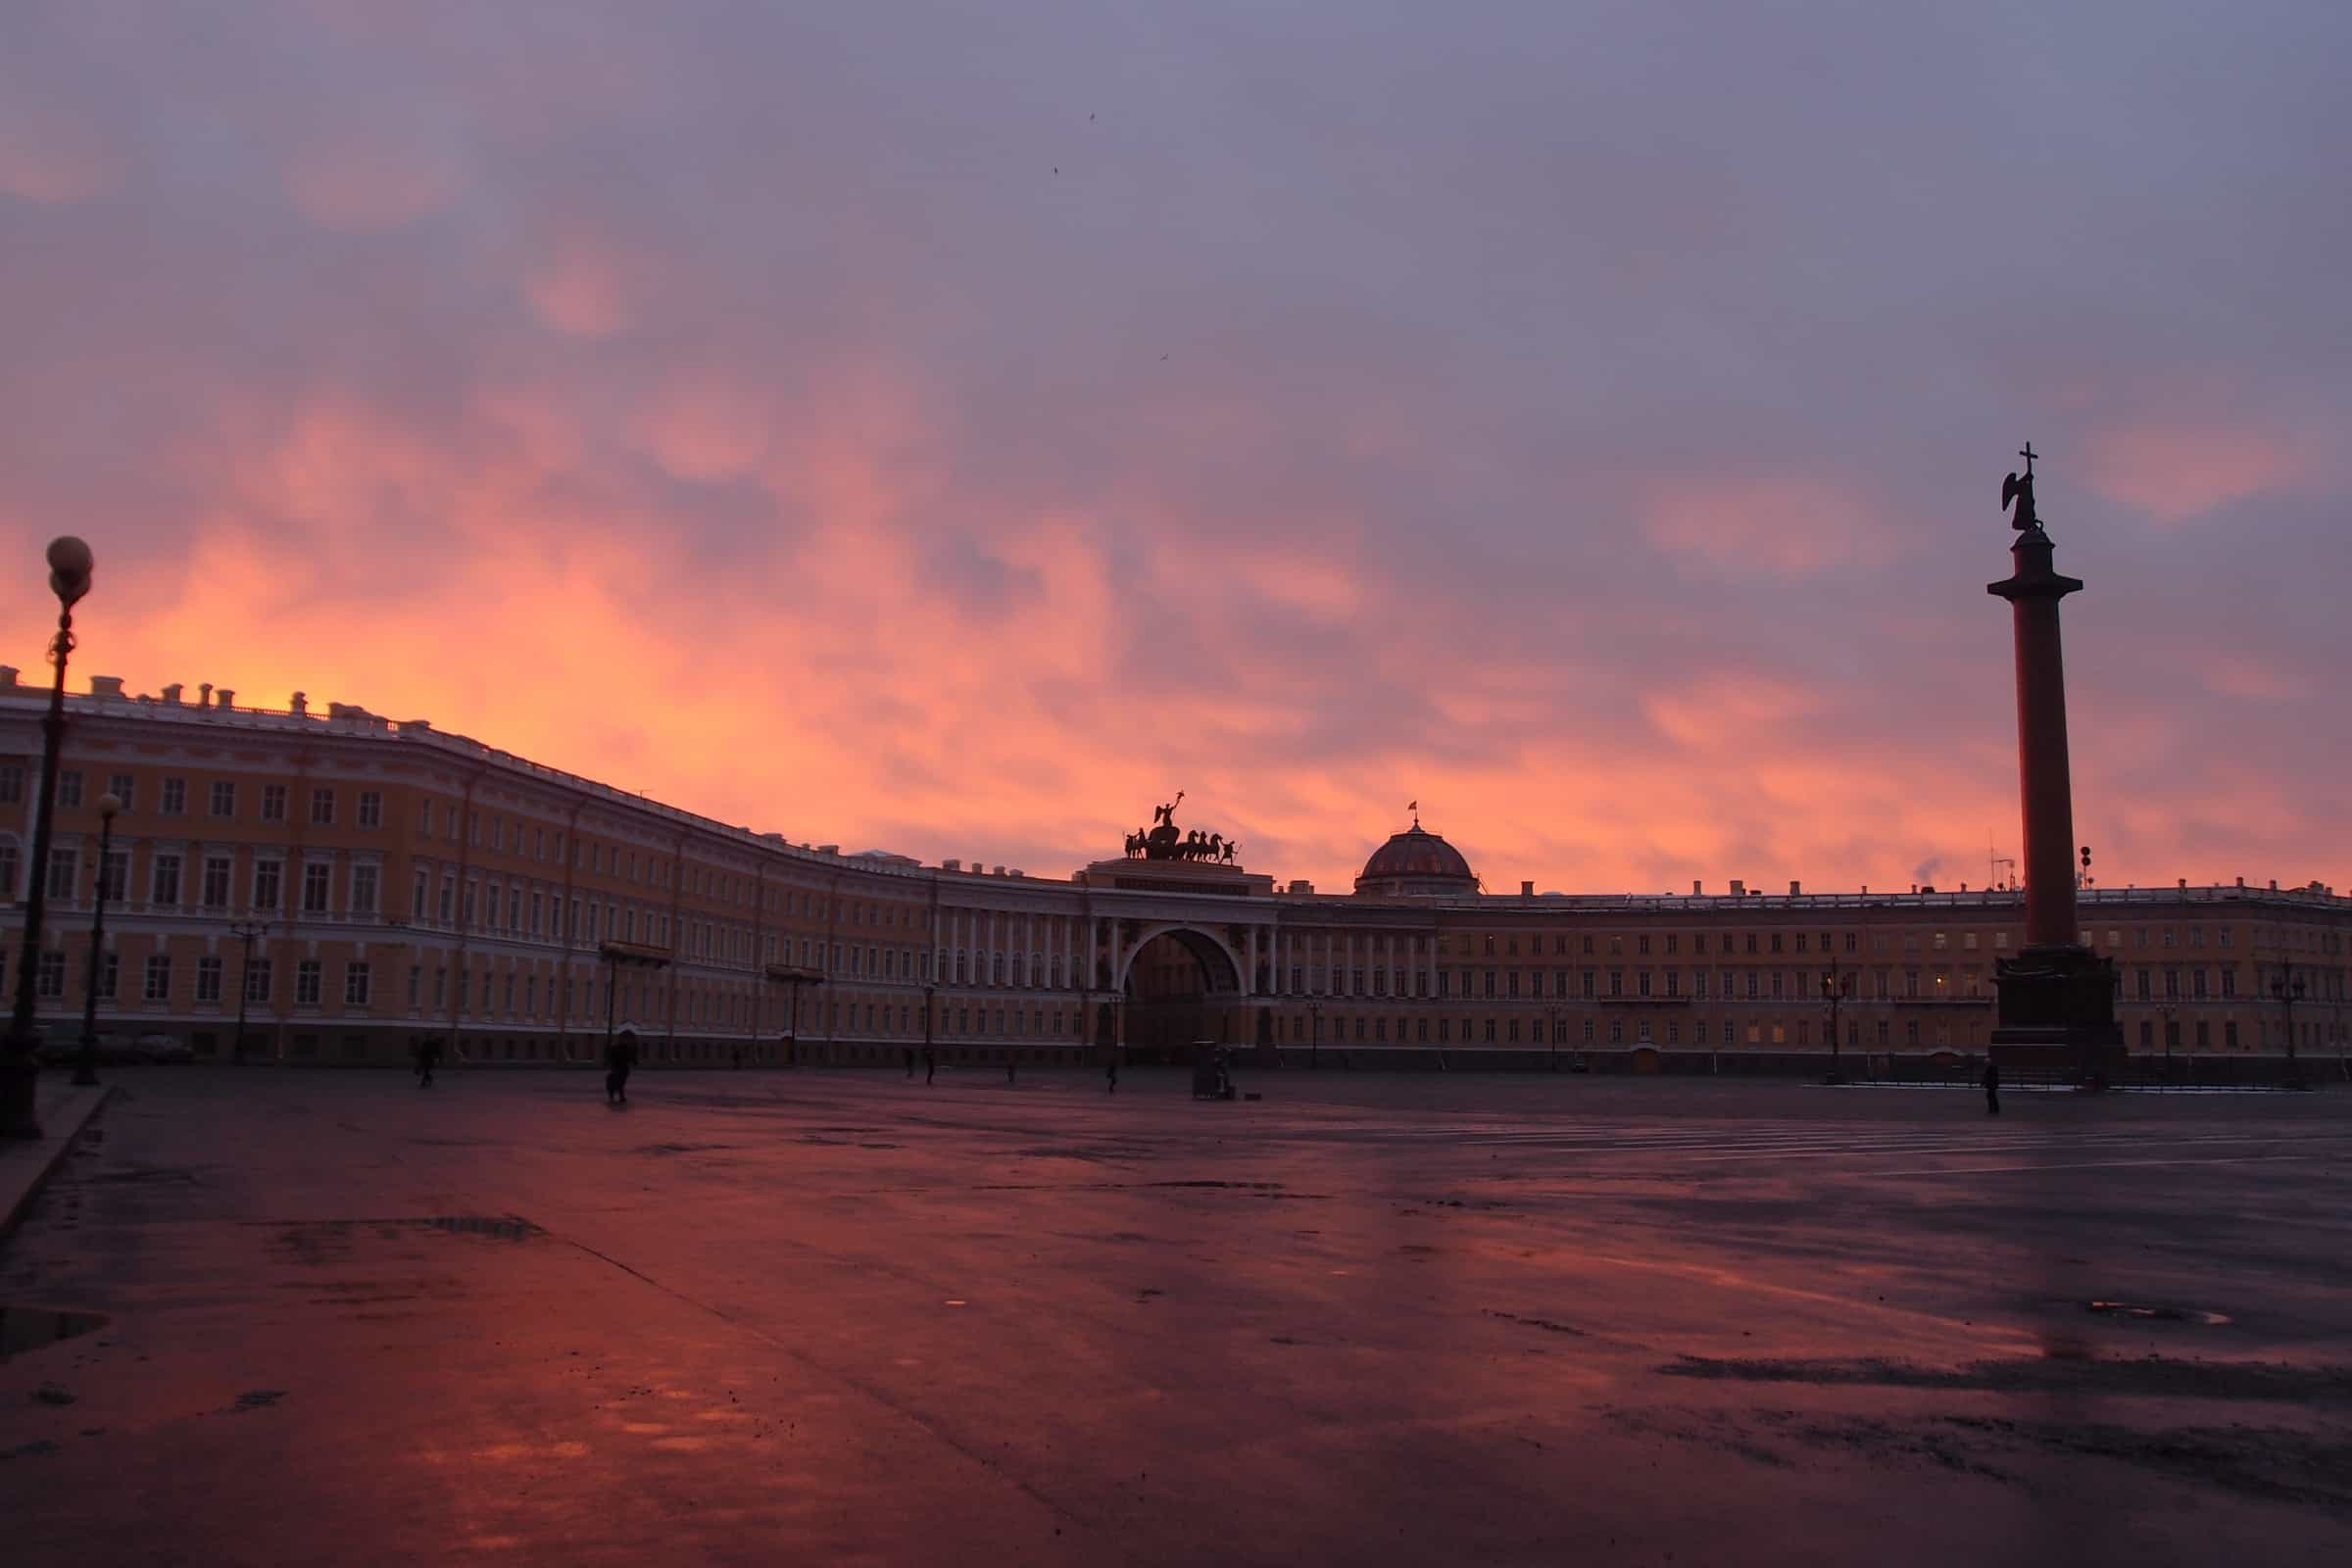 The General Staff Building & Triumphal Arch at dusk